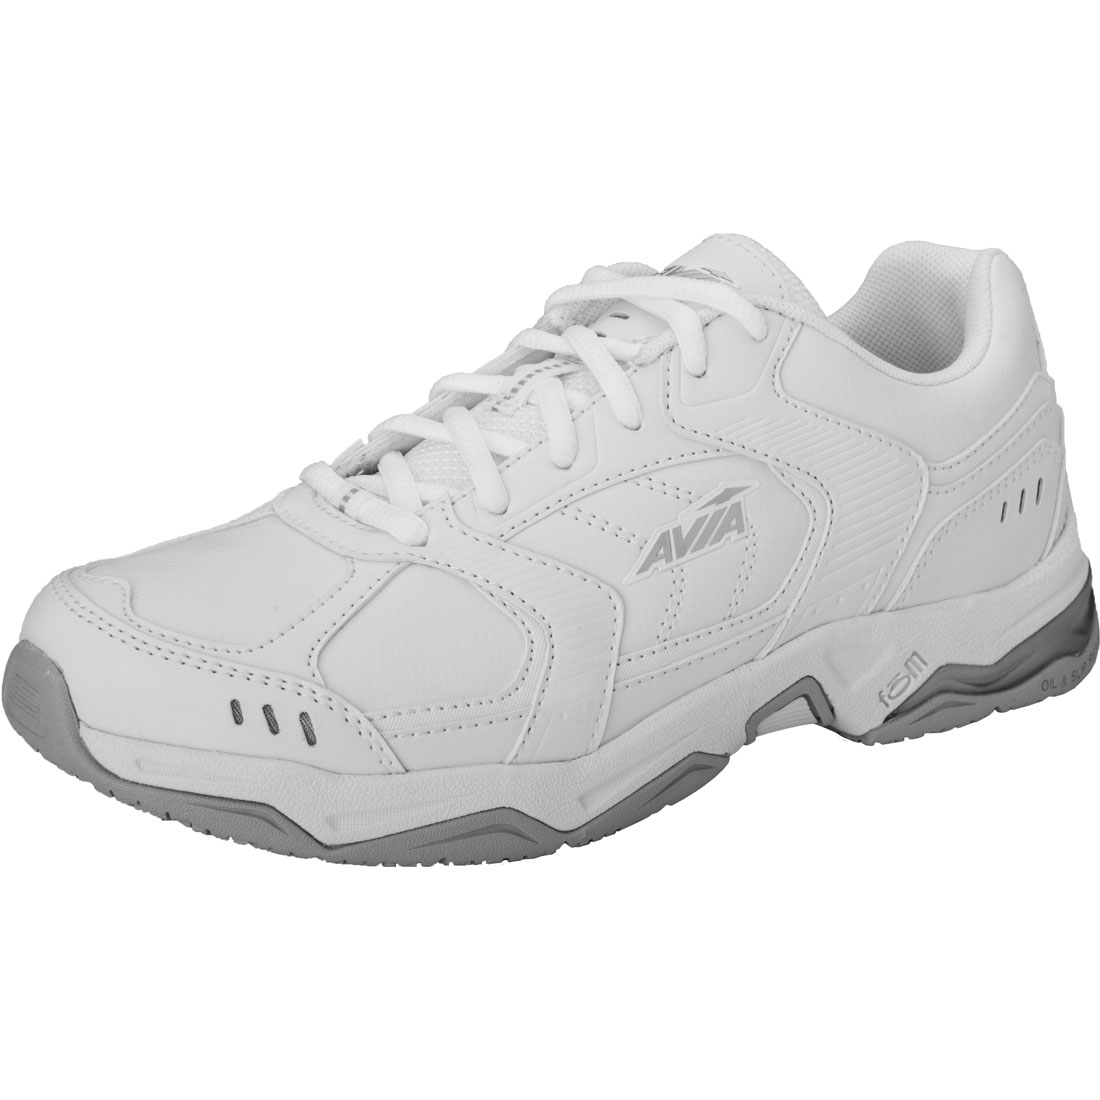 footwear slip resistant athletic a1439w wsv from